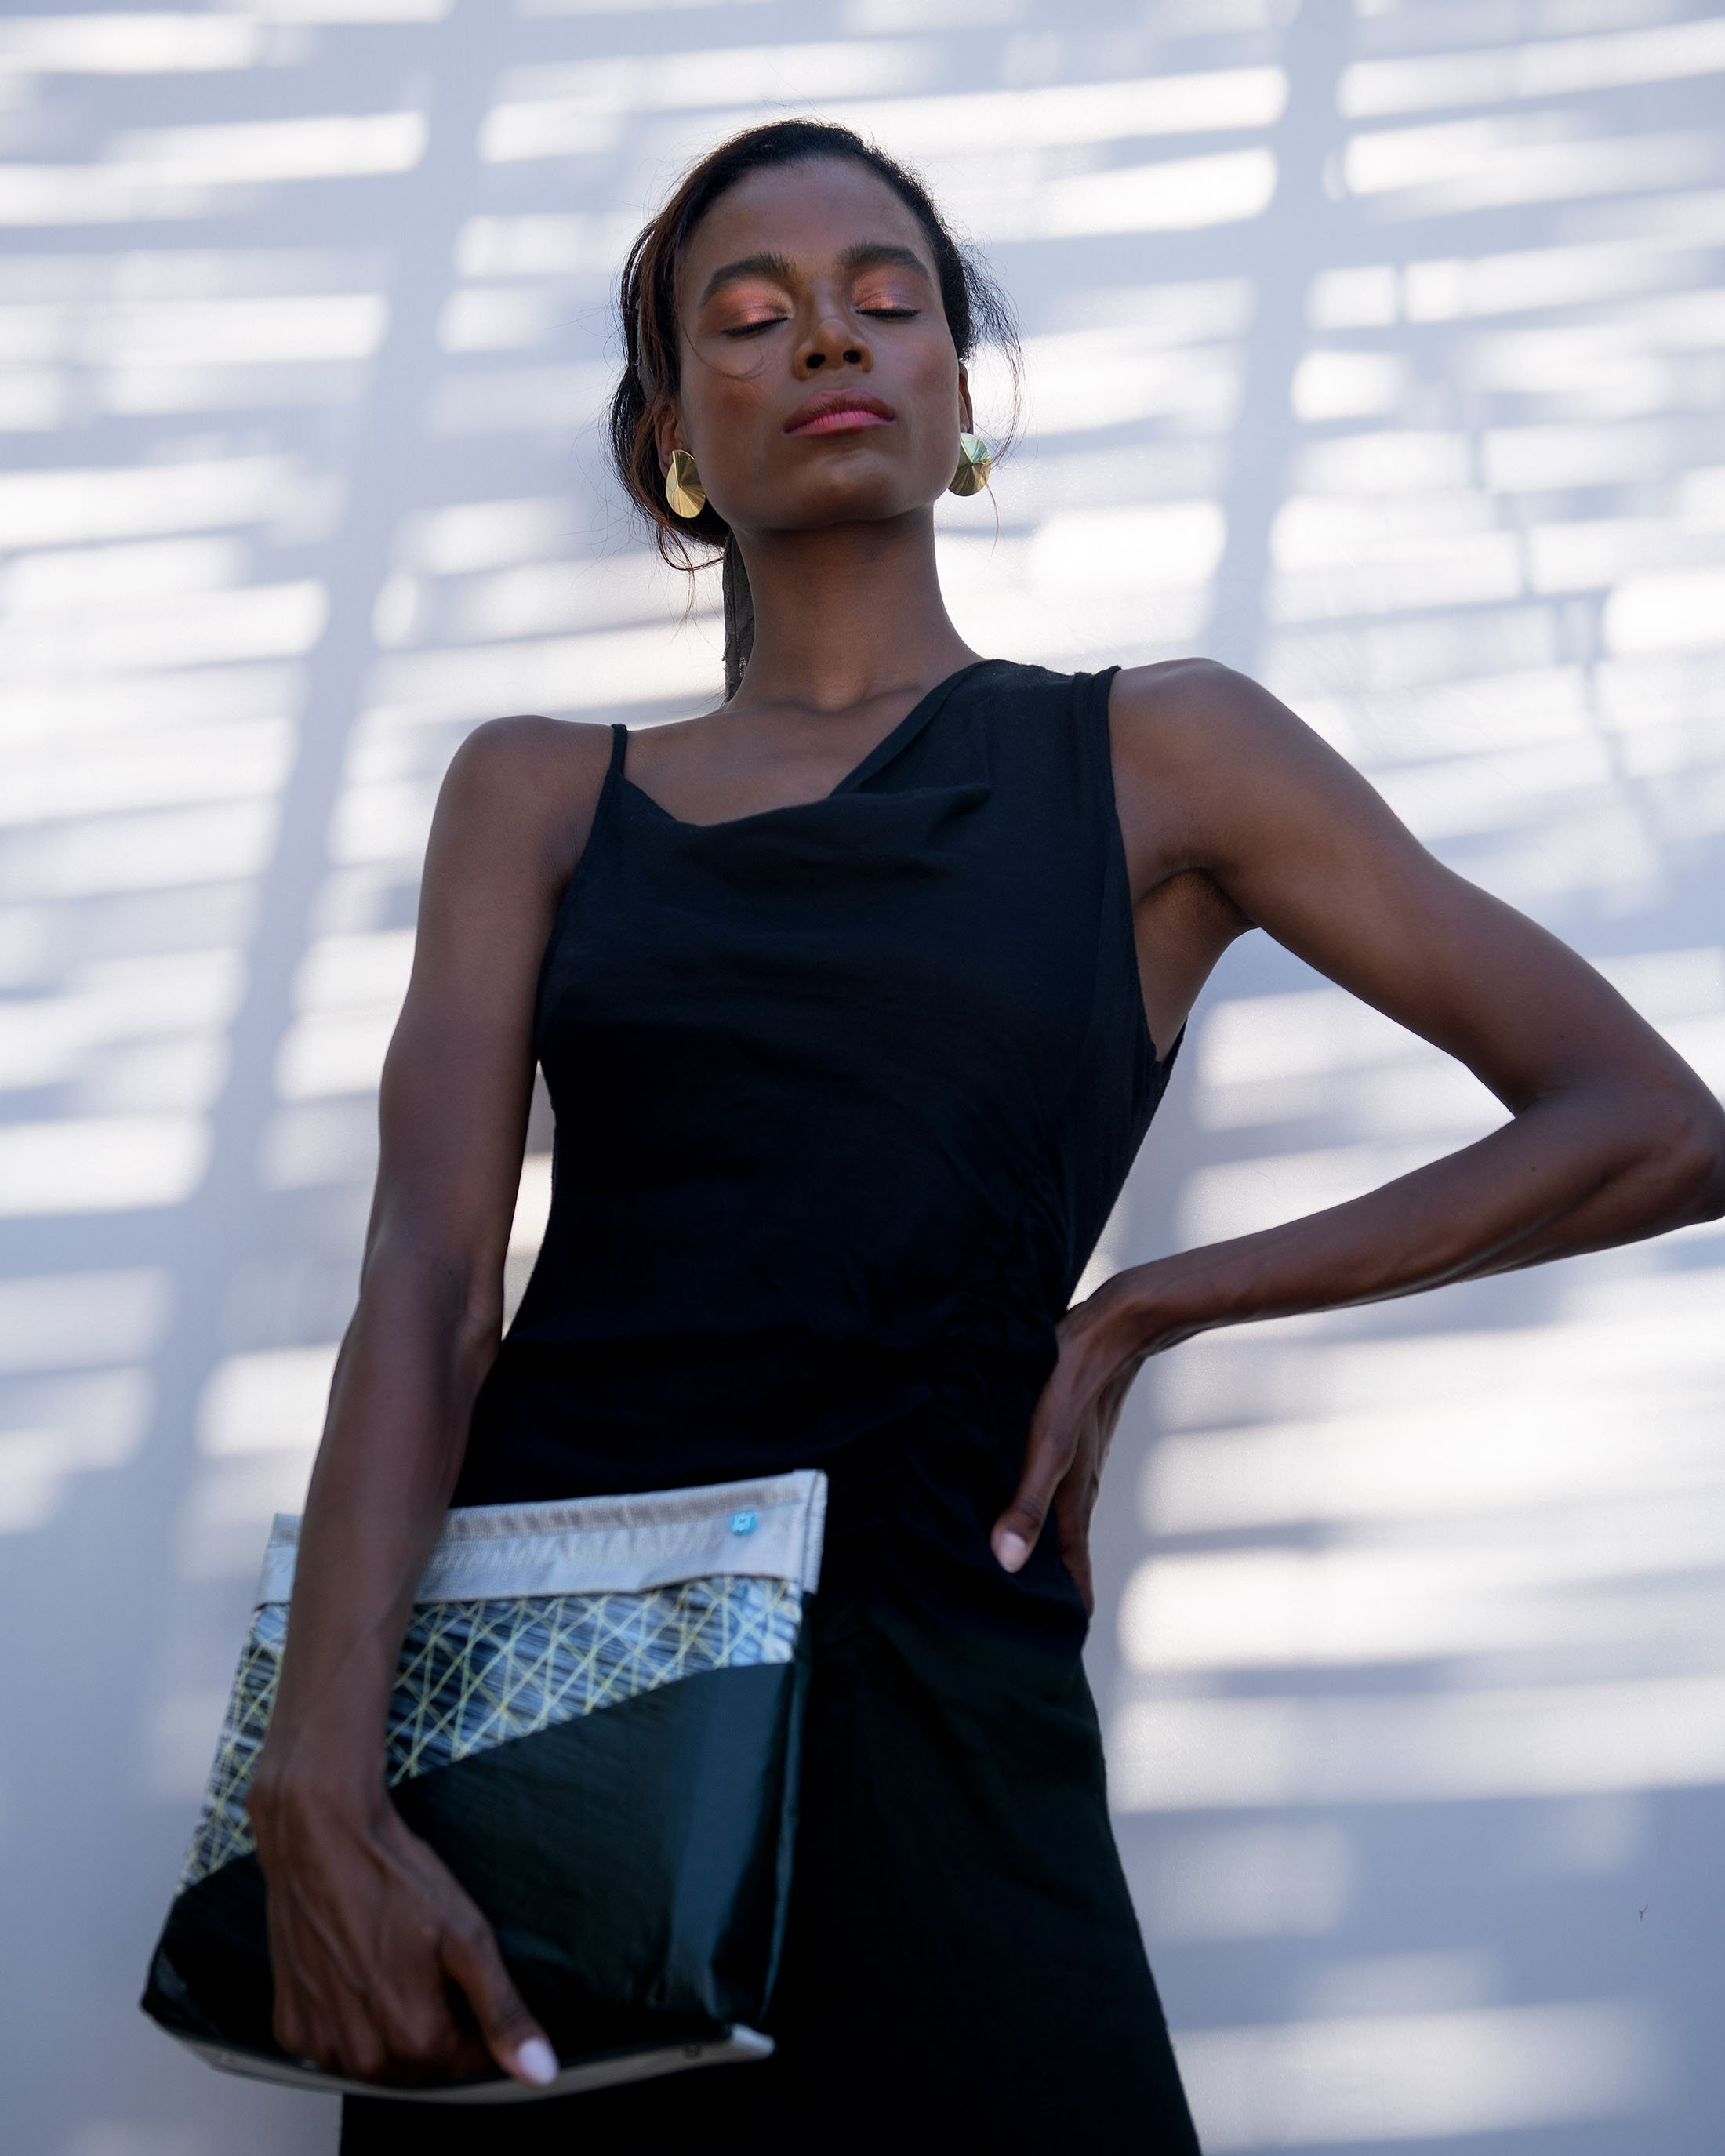 A model poses with one of the bags Huner the Brand created from old sailcloth. (Photo courtesy of Hüner Aldemir)